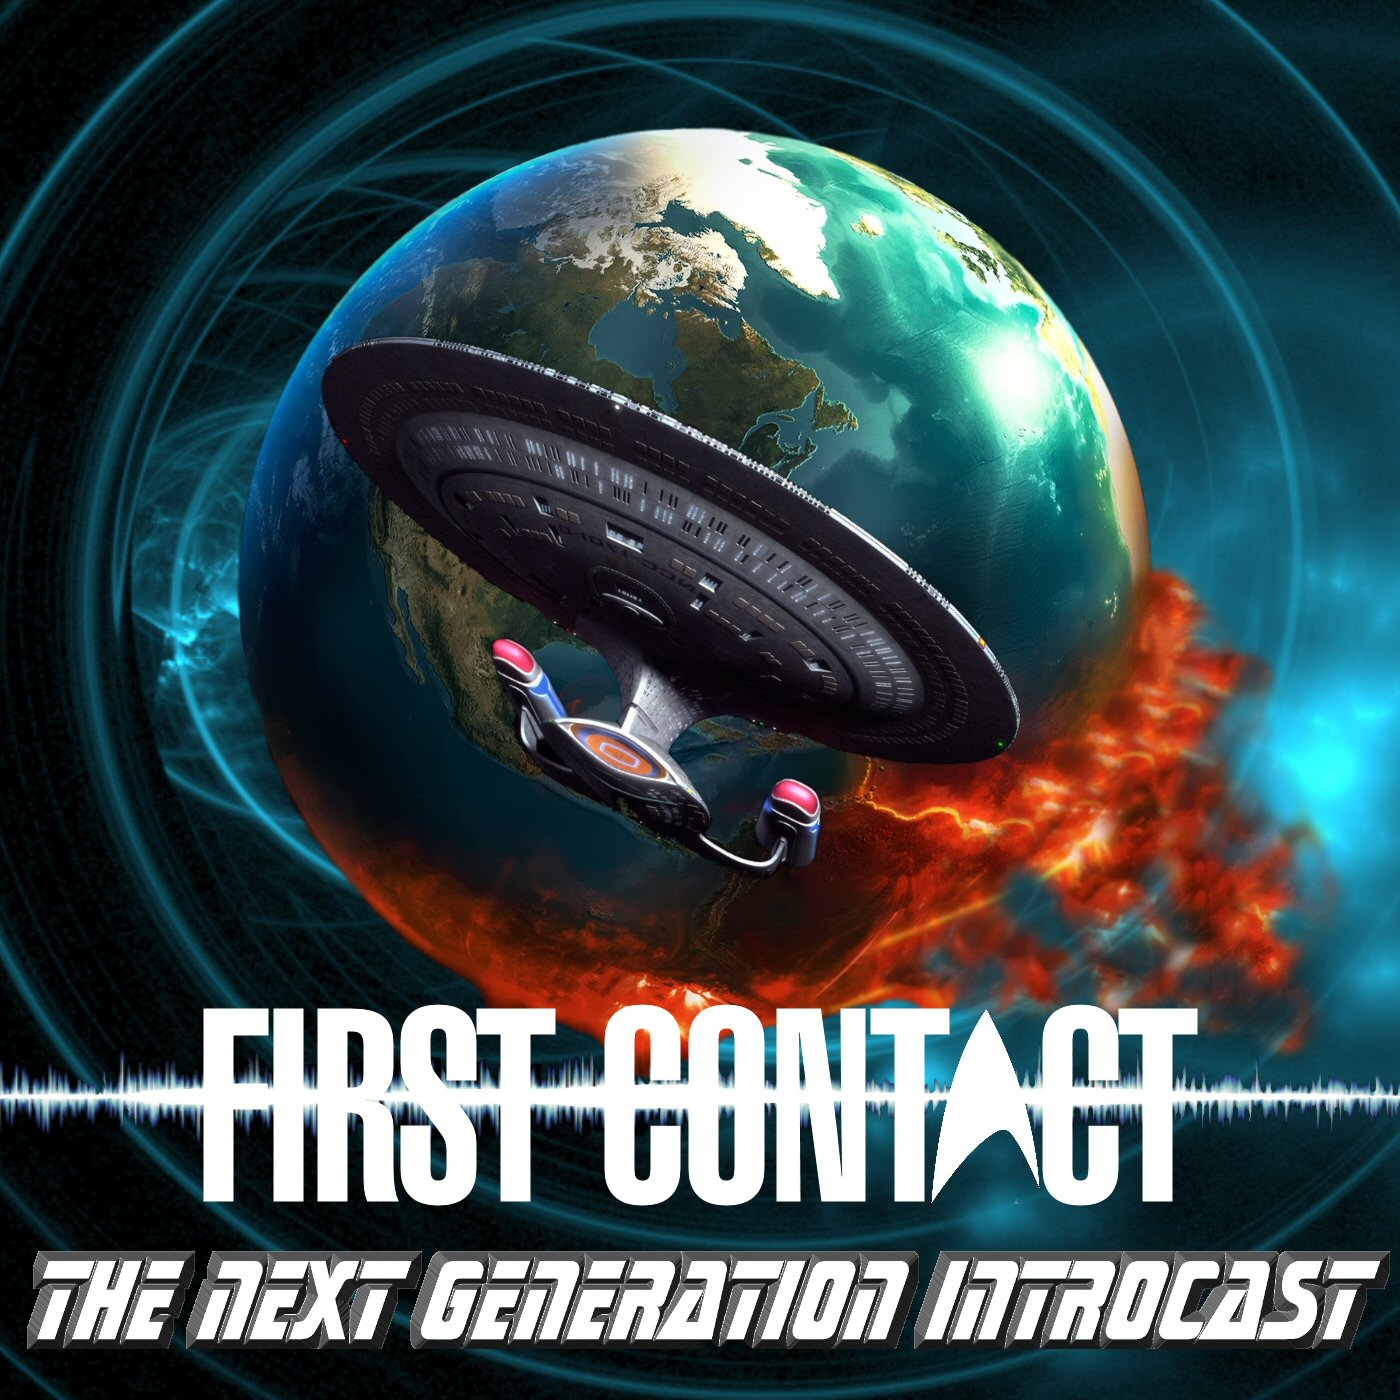 First Contact The Next Generation Introcast